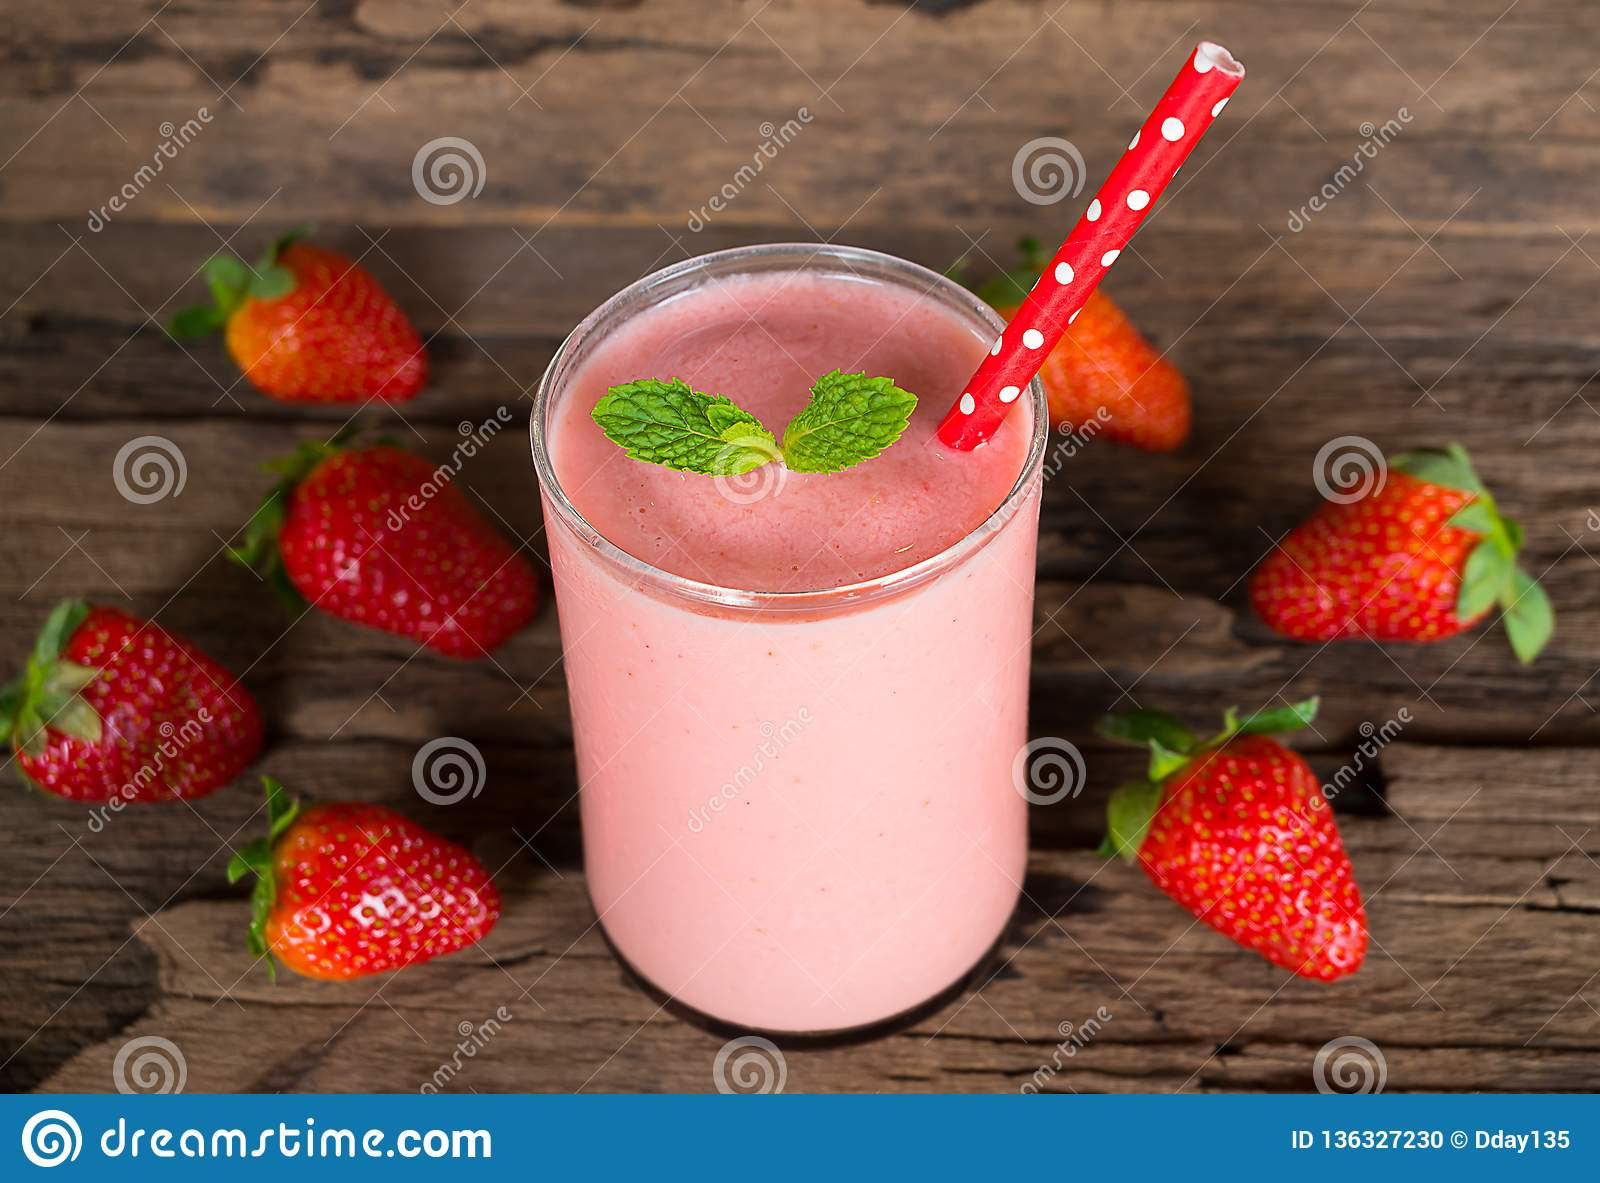 Strawberry smoothies colorful fruit juice beverage healthy the taste yummy In glass drink episode morning on wooden background.